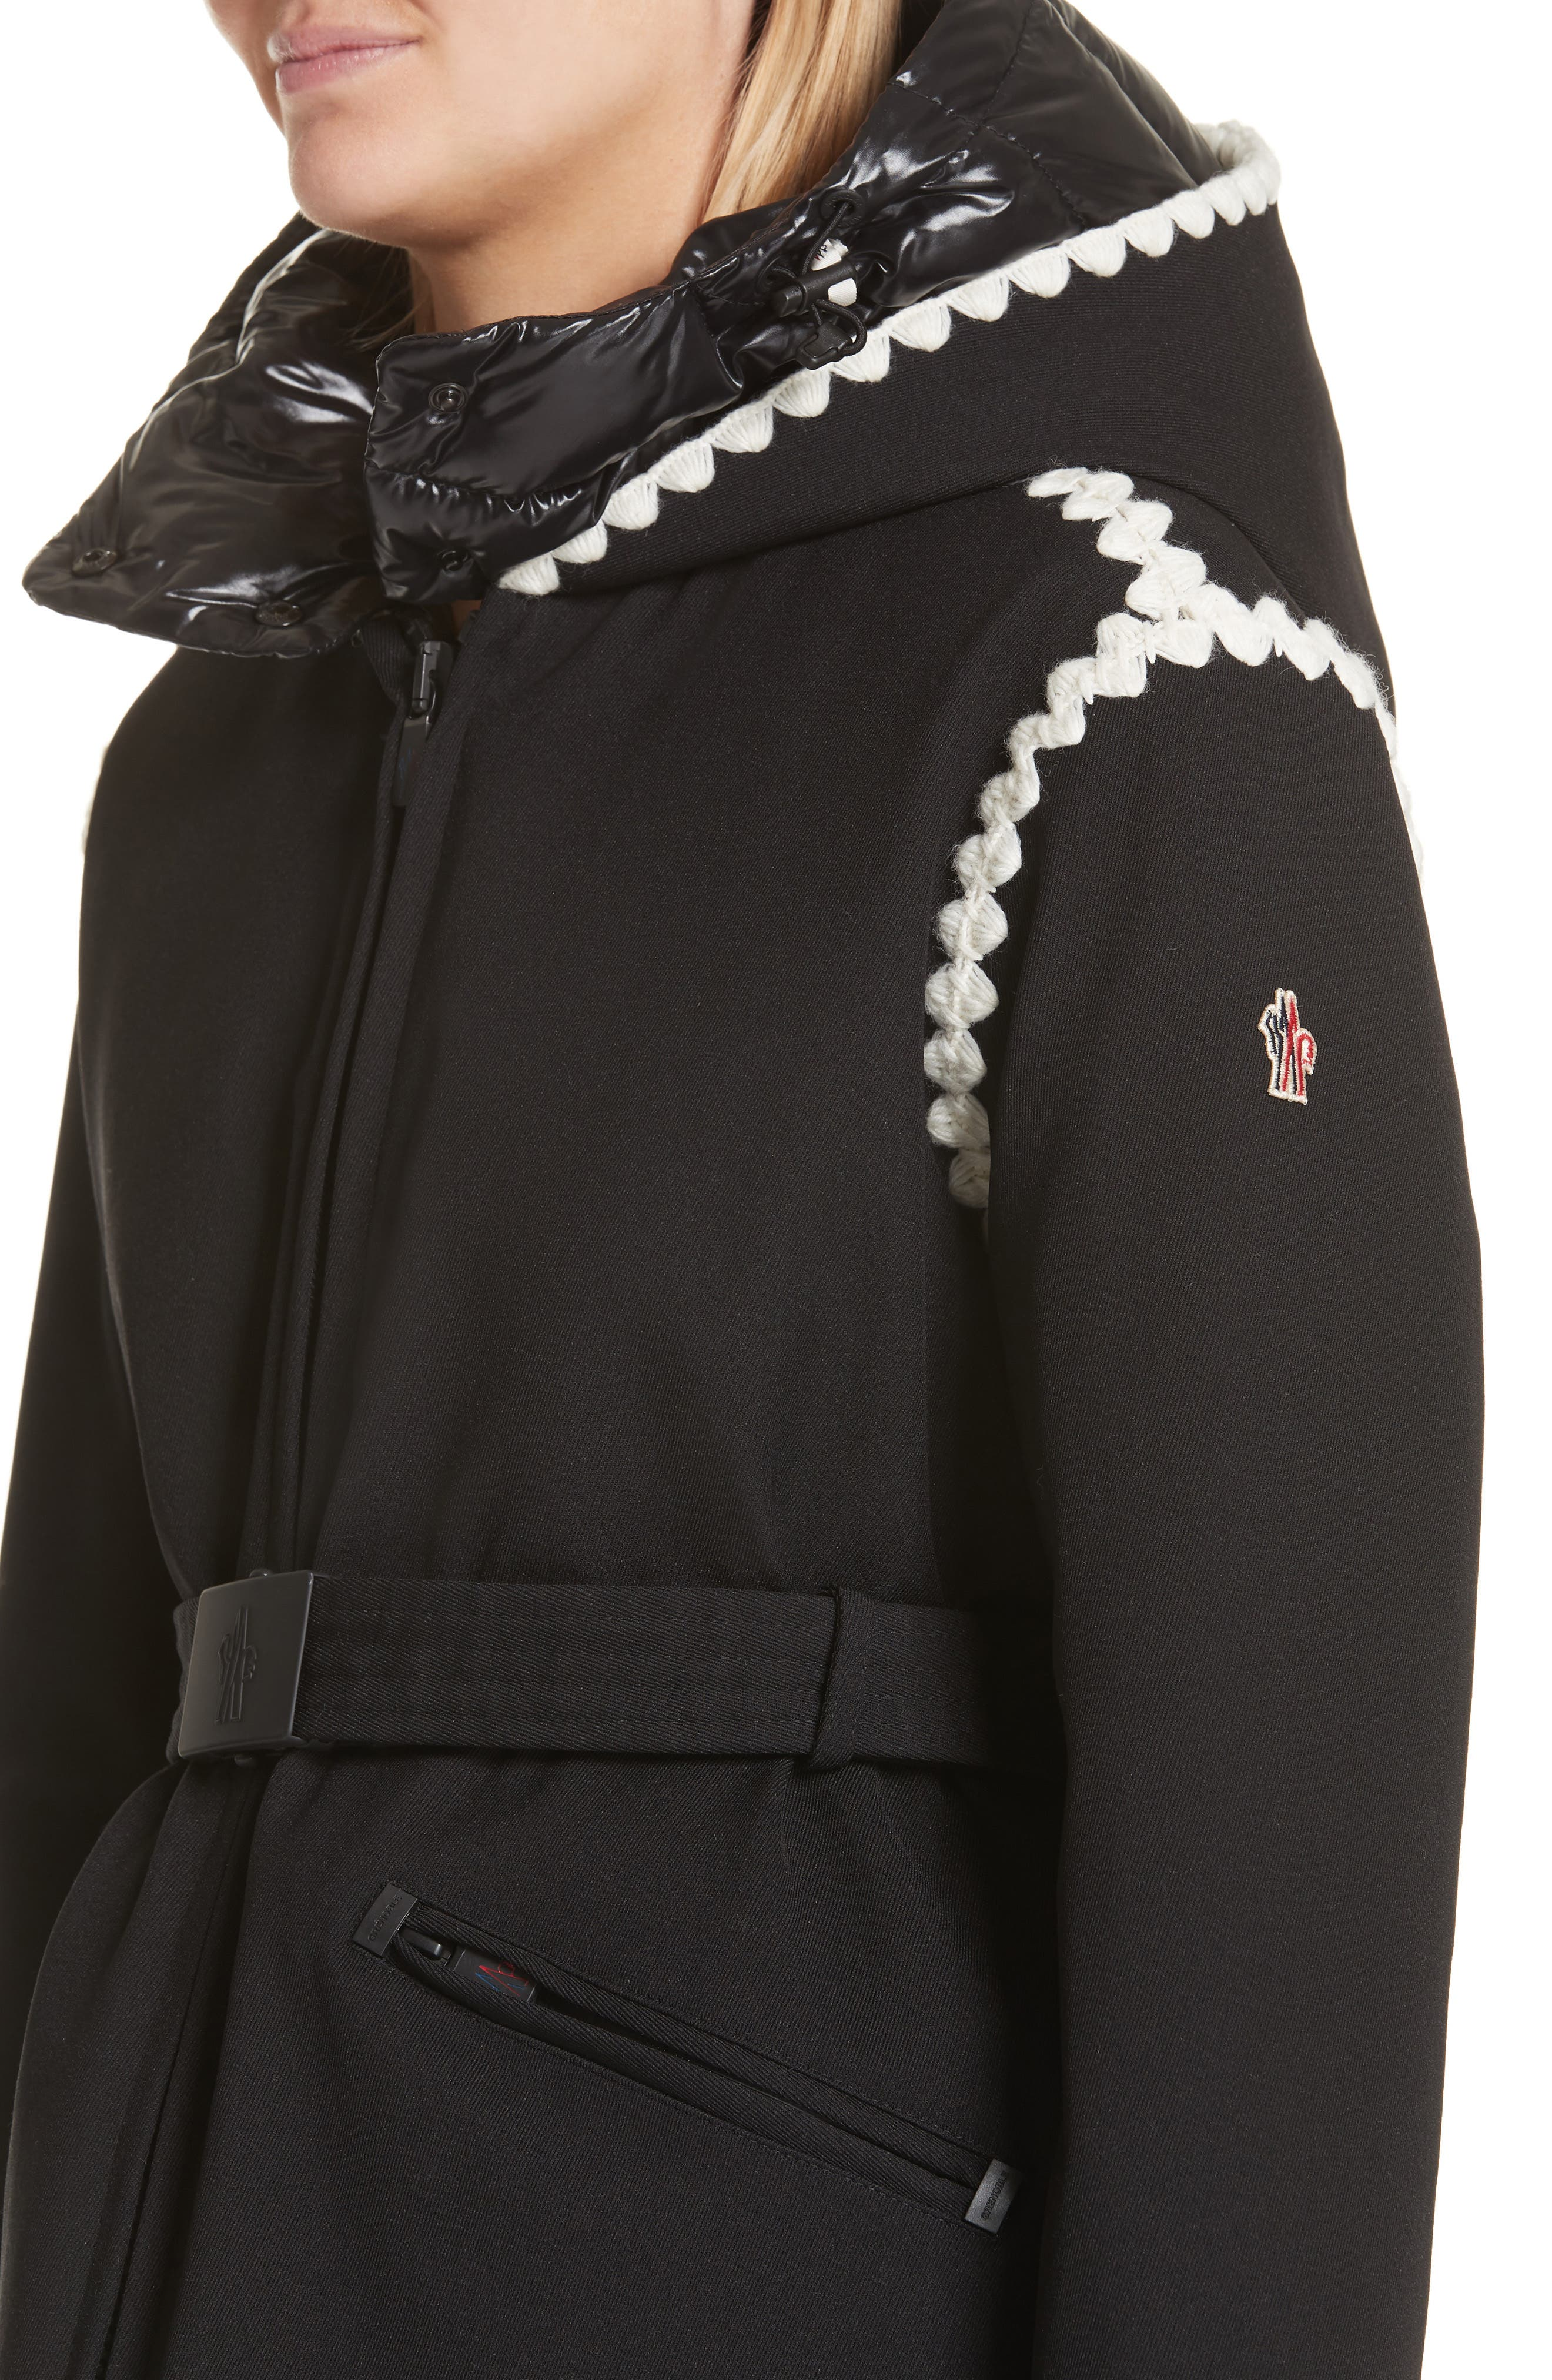 Bourget Embroidered Hooded Down Coat,                             Alternate thumbnail 4, color,                             BLACK